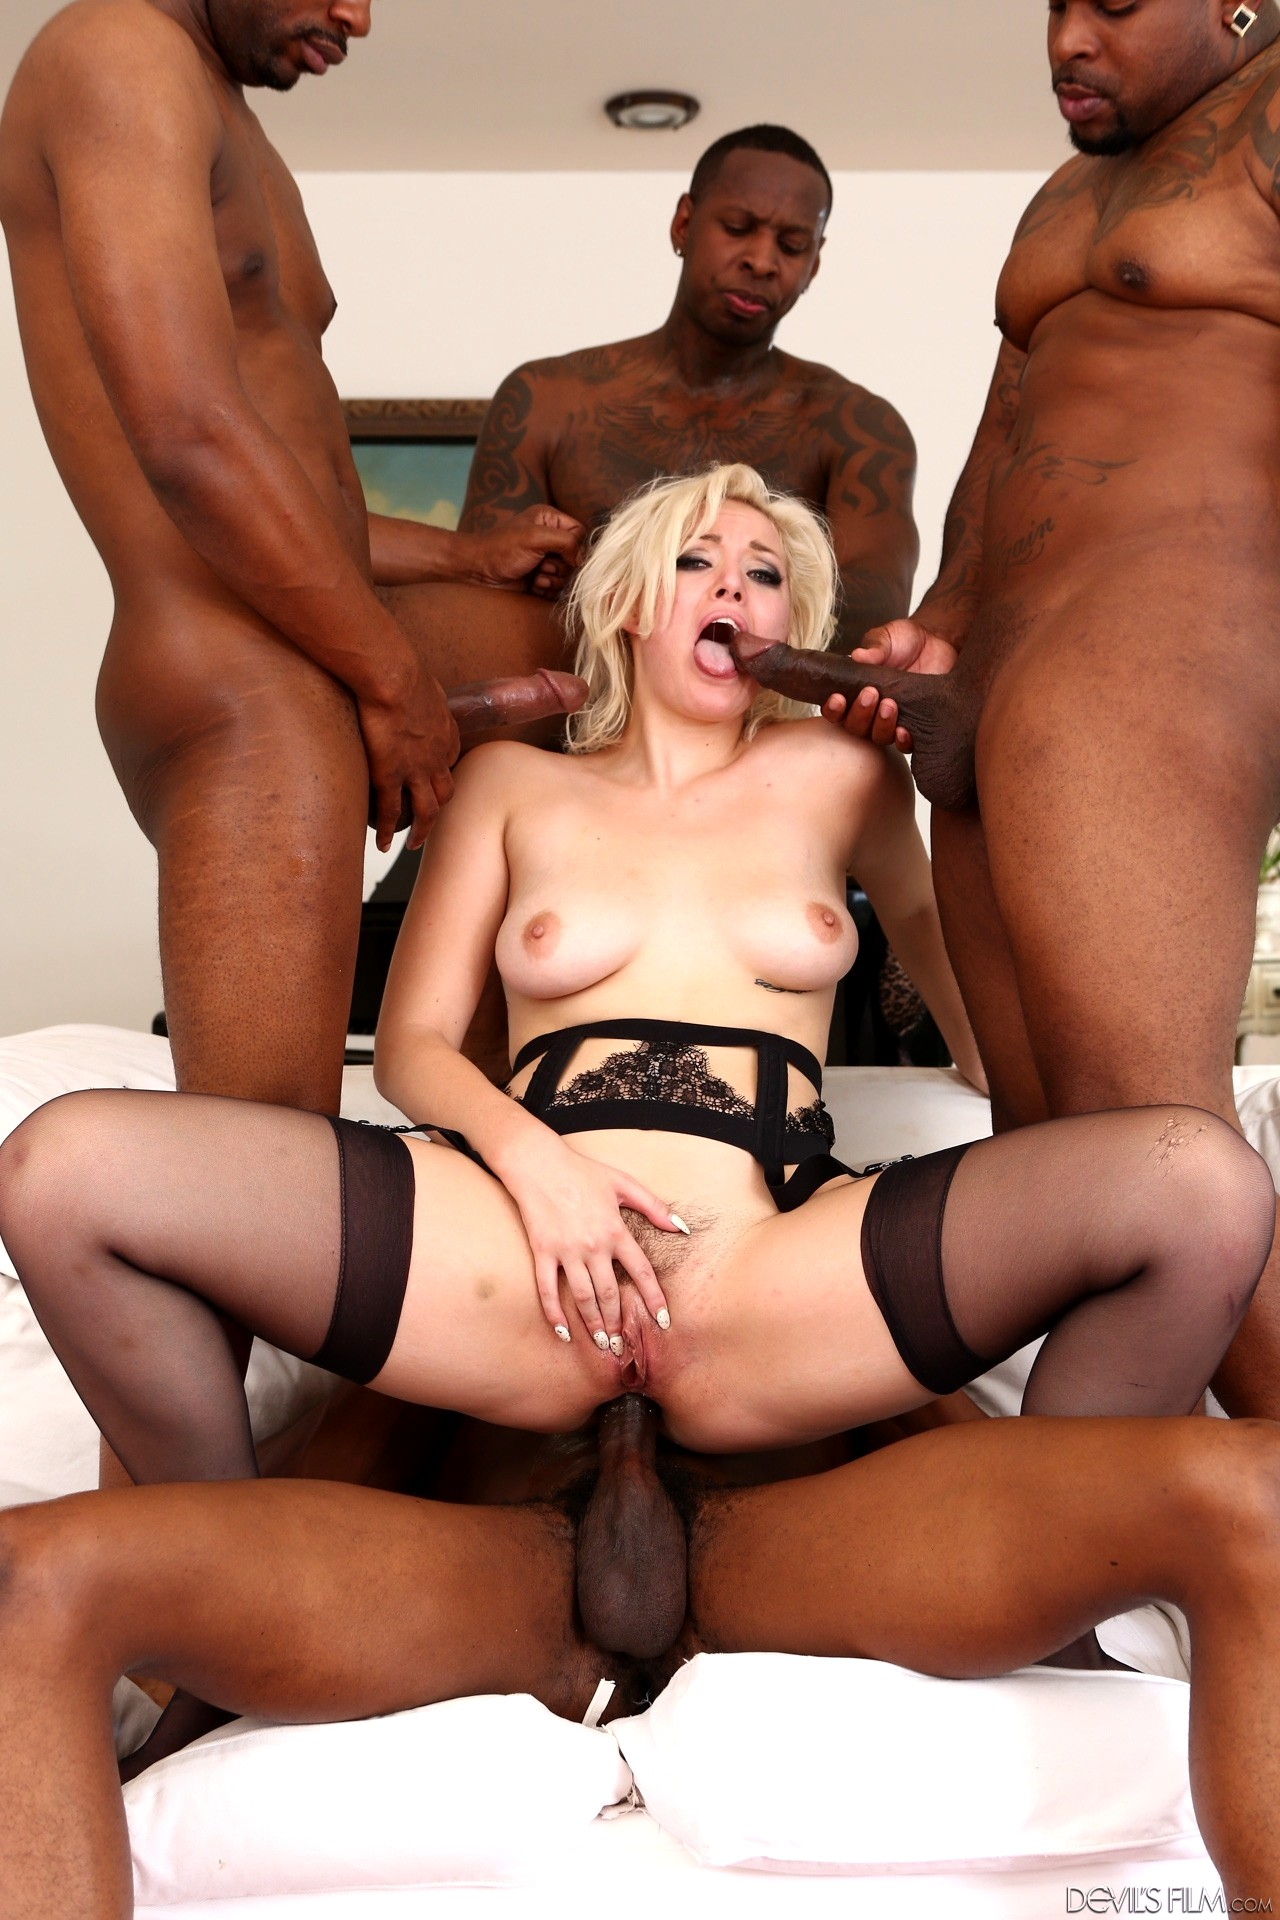 Babe Today Devils Film Jenna Ivory Original Groupsex -5602